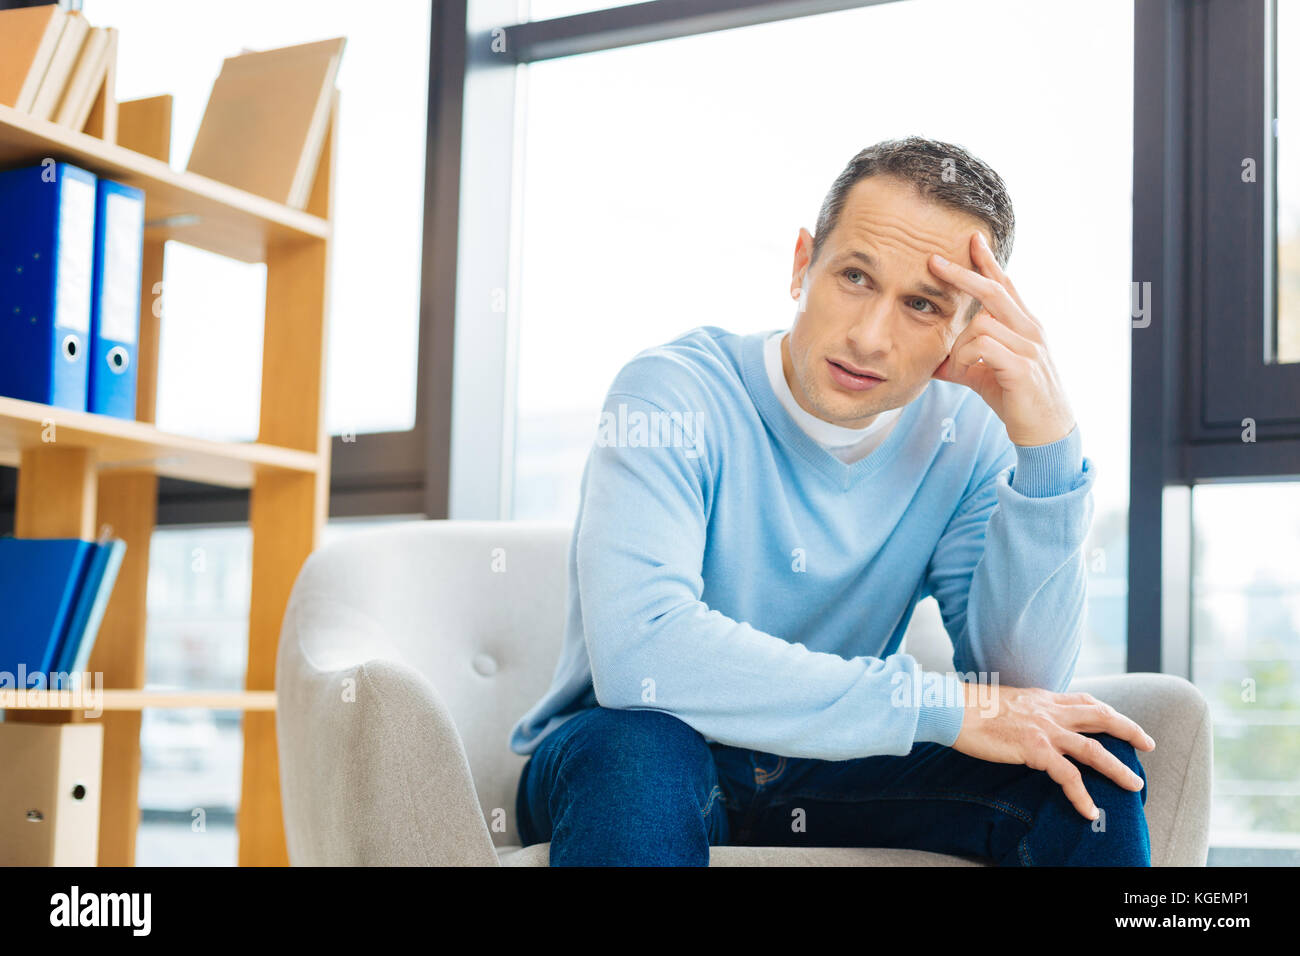 Cheerless adult man thinking about his life - Stock Image